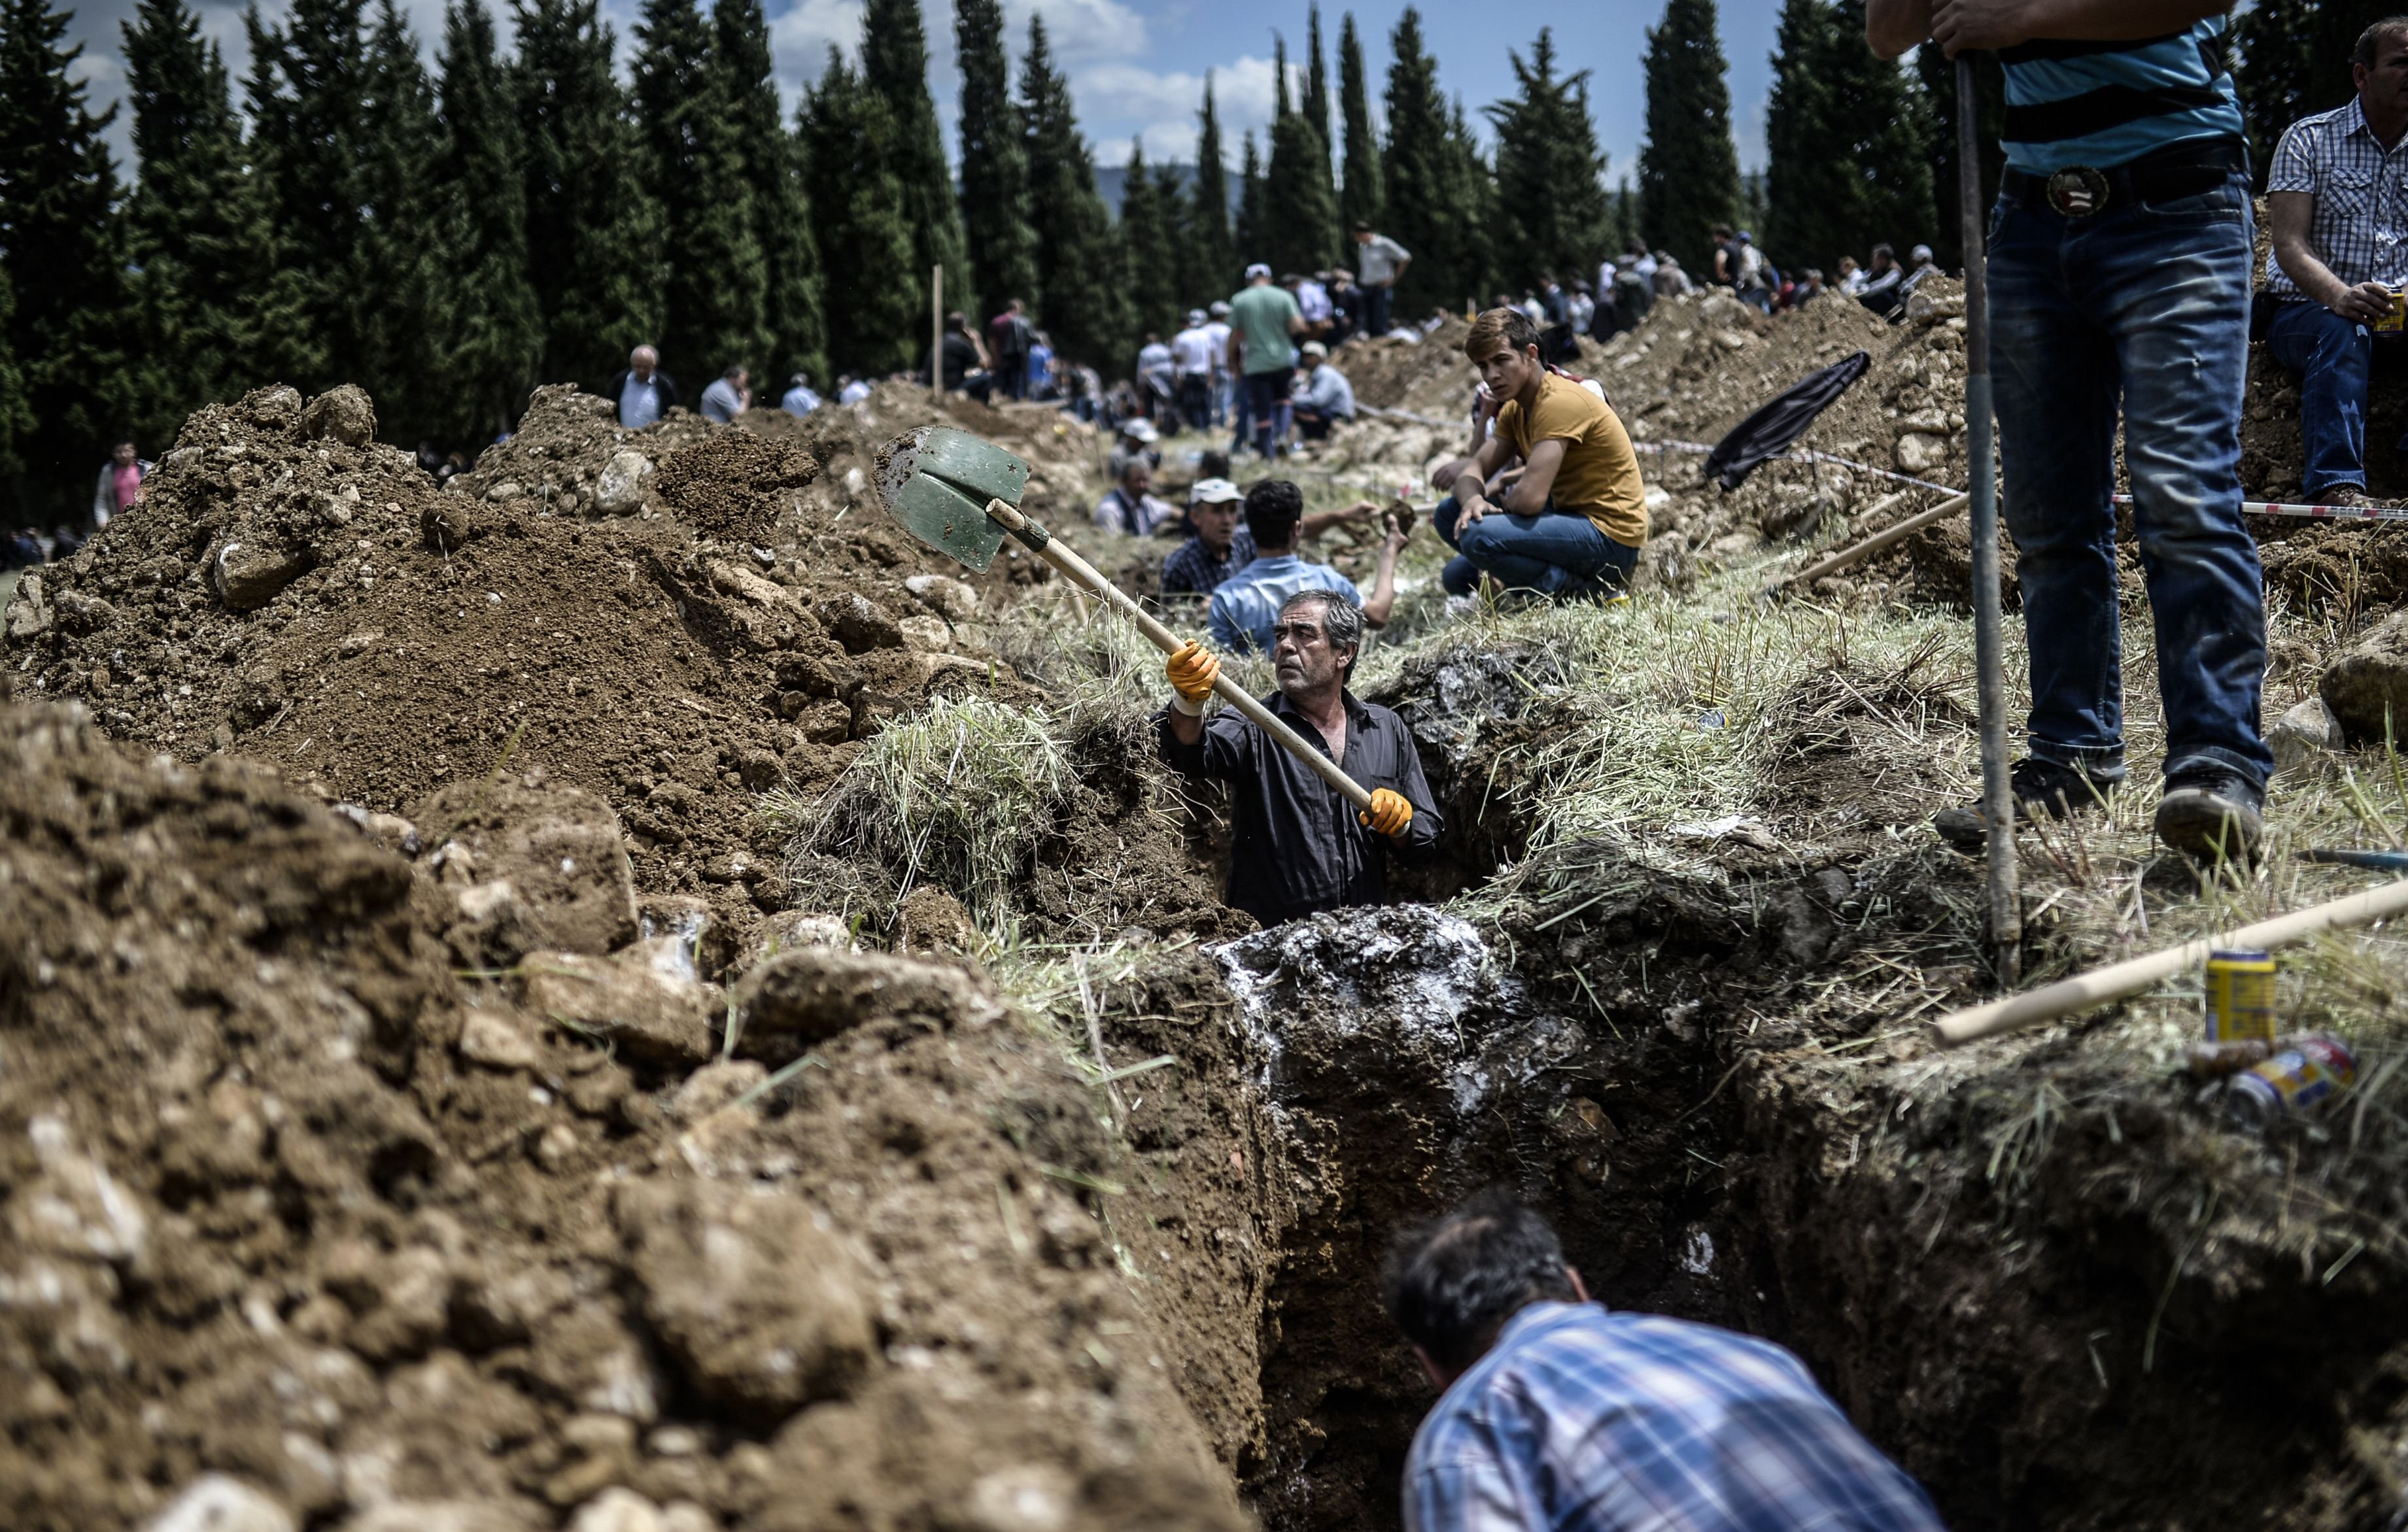 People dig graves for miners in a cemetery during the funeral ceremony of miners who died in an explosion on May 15, 2014, in the western town of Soma in the Manisa province.